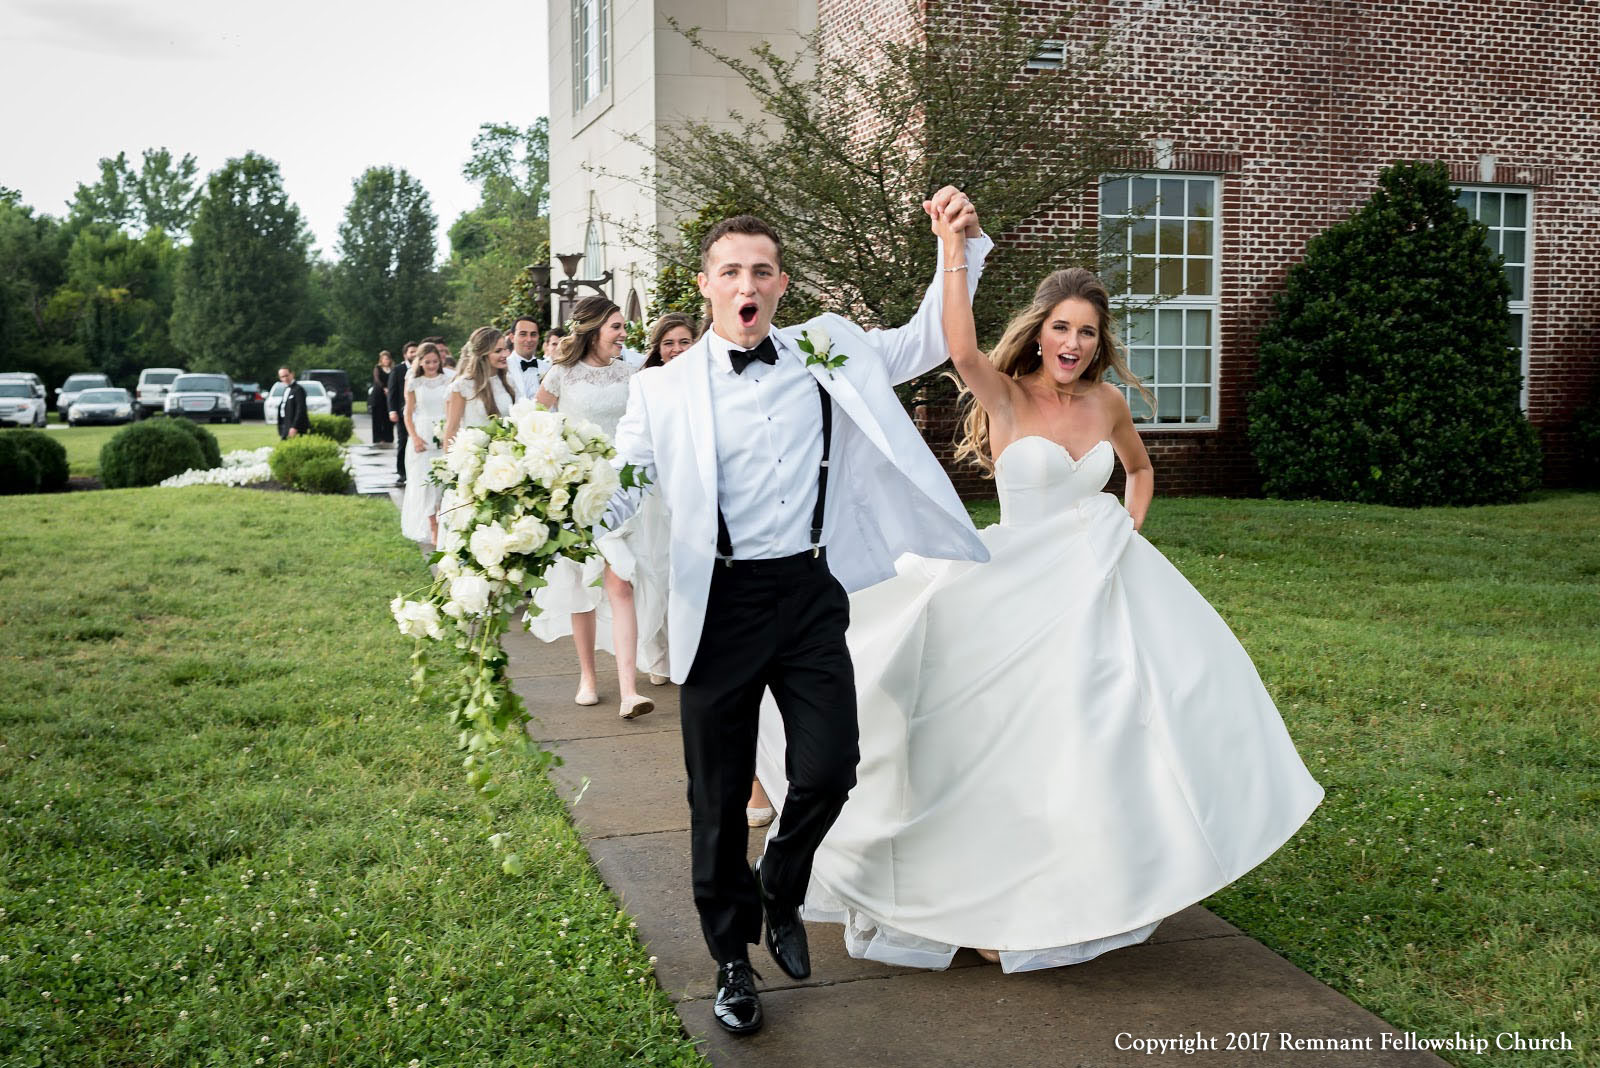 Remnant-Fellowship-Hamilton-Gormsen-Covenant-Wedding-Bride-and-Groom-Departure-01